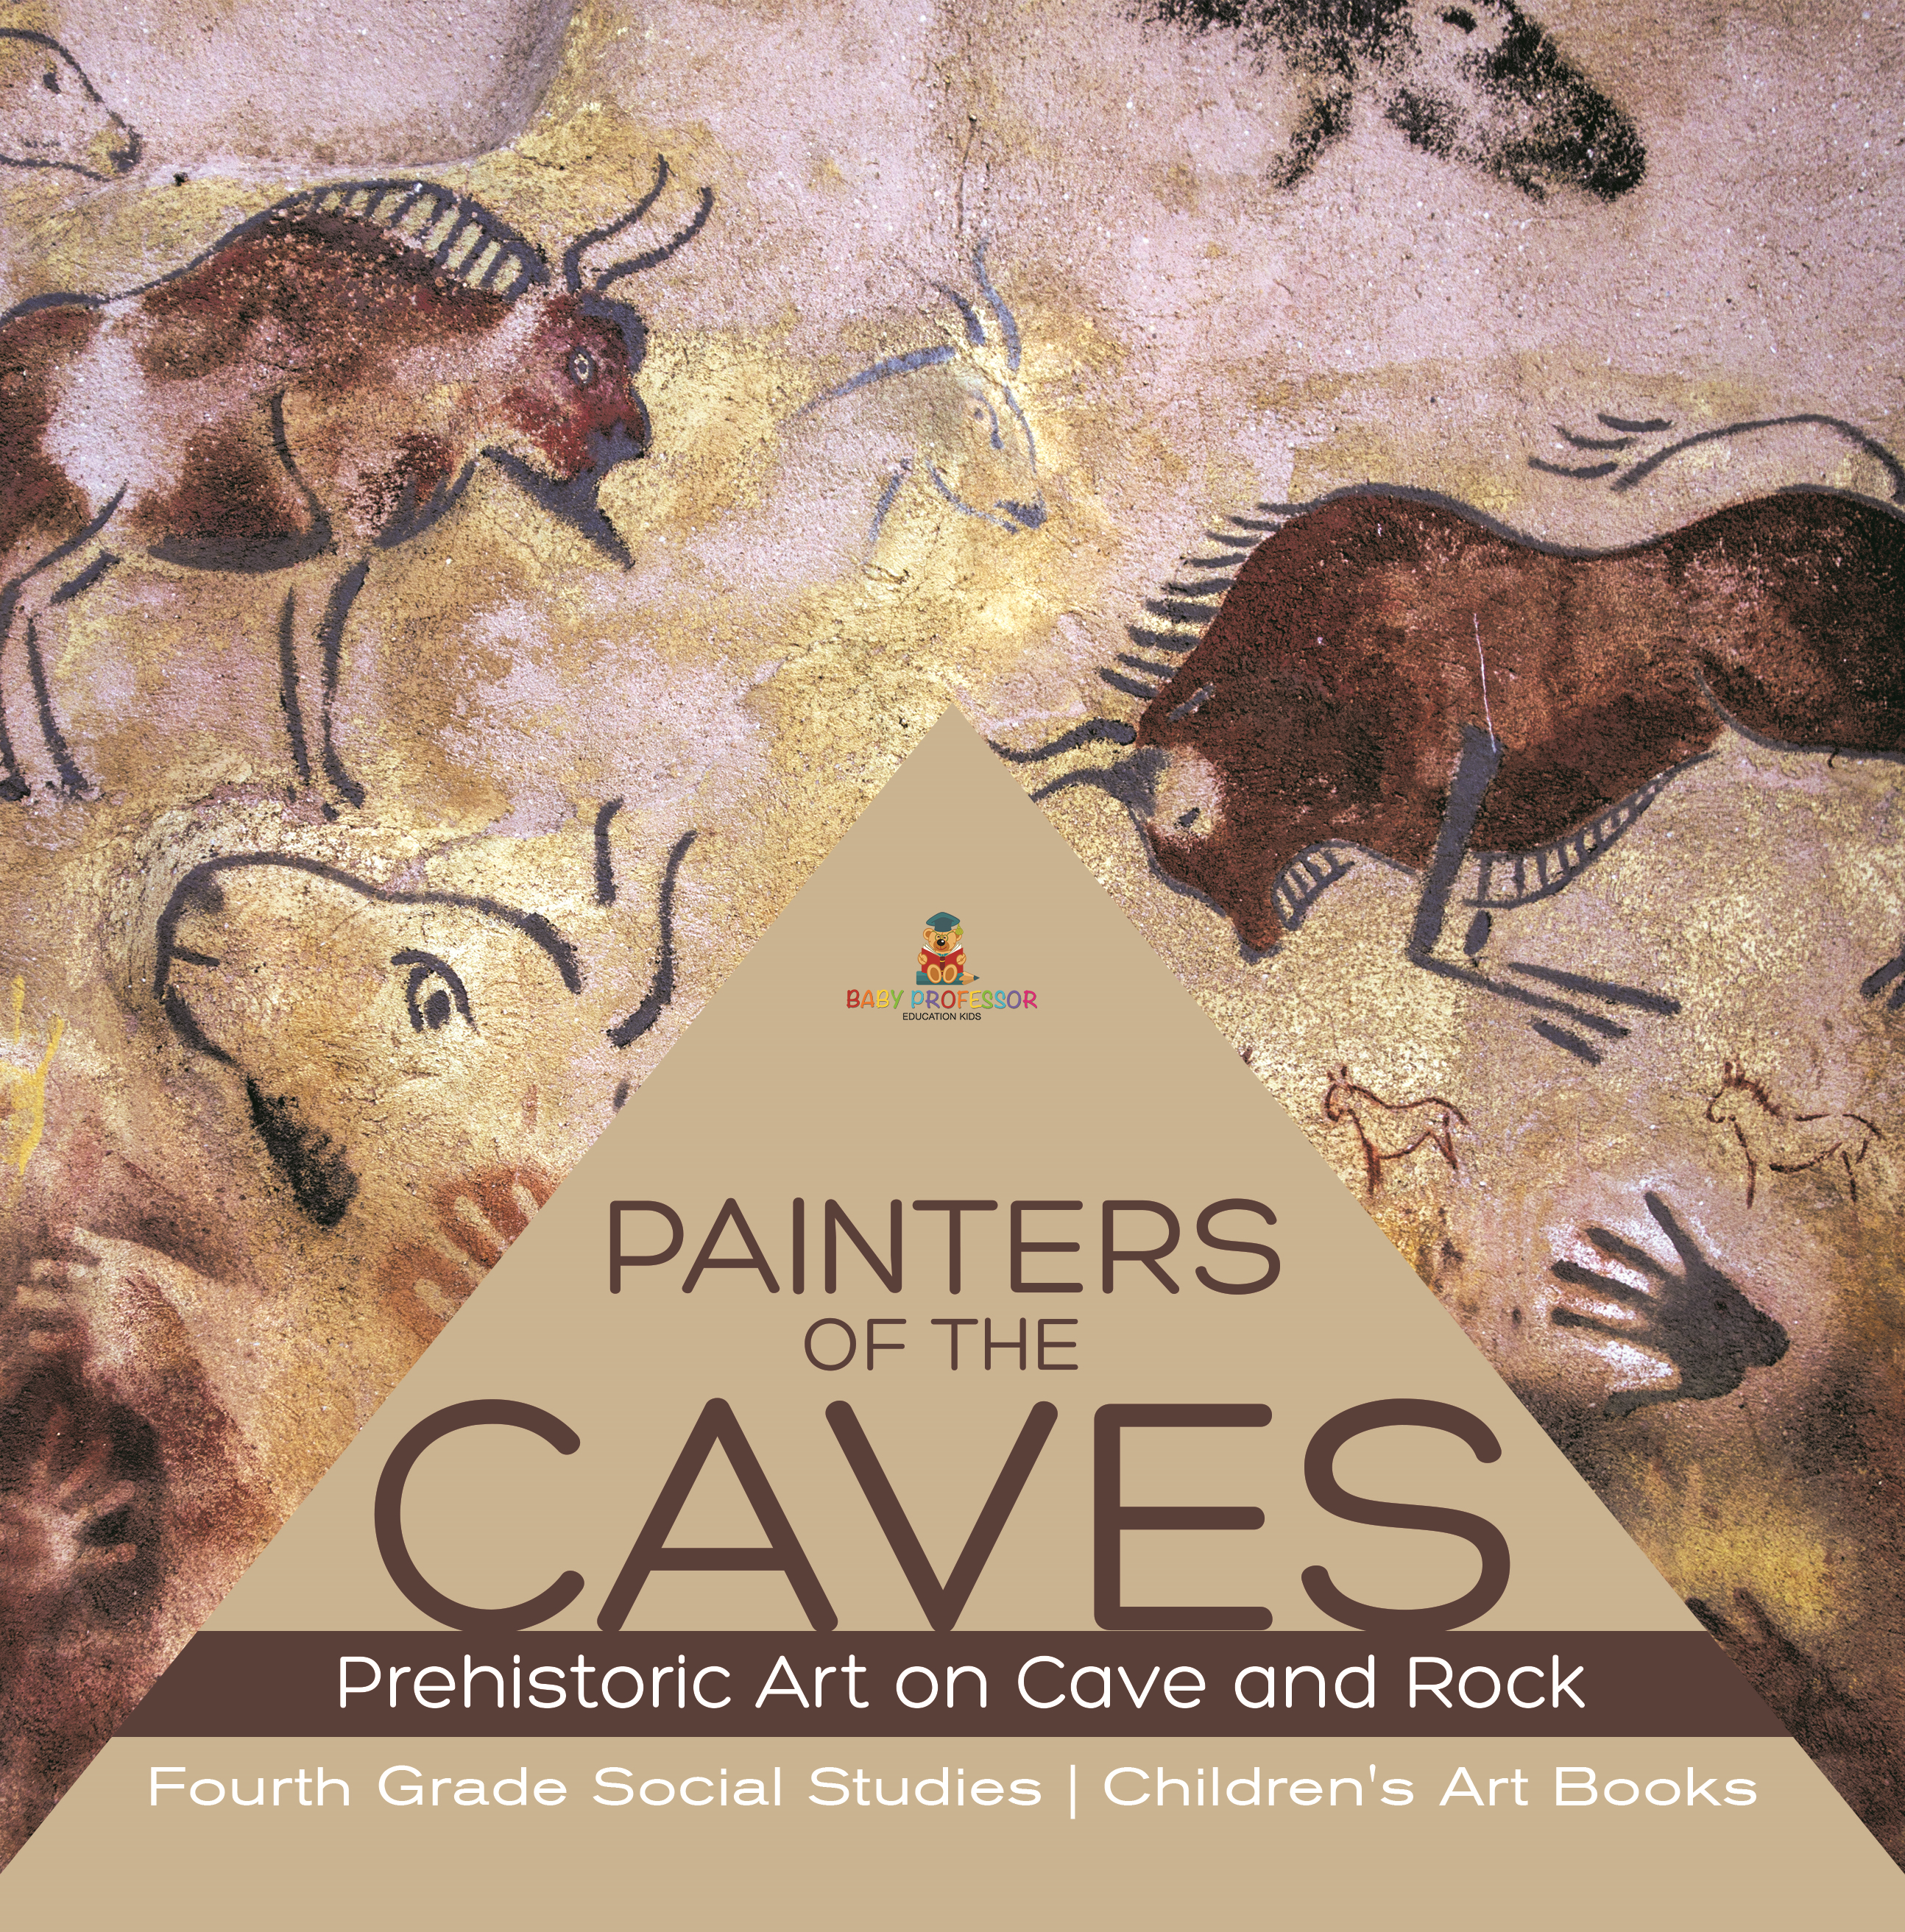 Painters of the Caves | Prehistoric Art on Cave and Rock | Fourth Grade Social Studies | Children's Art Books